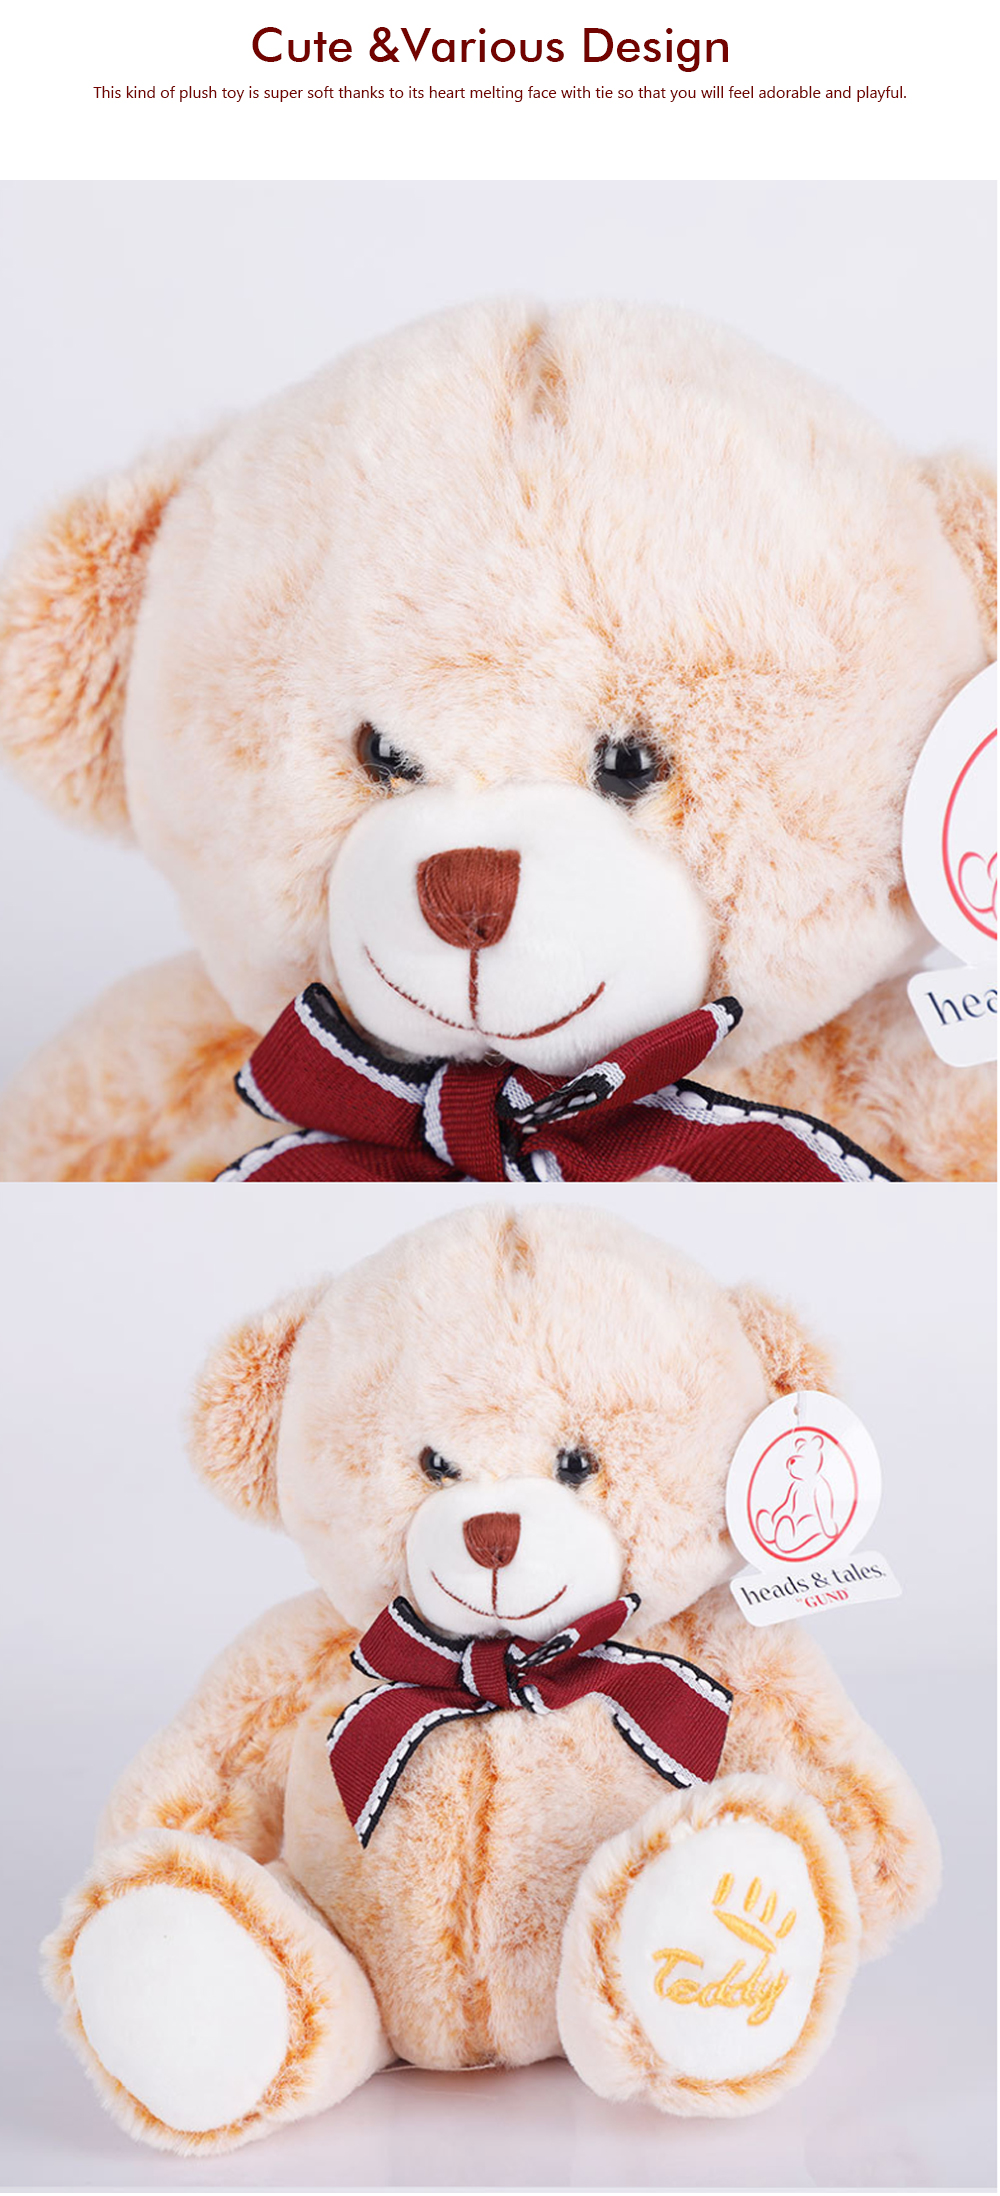 Bow Tie Bear Plush Toy, Grab Doll Machine Toys, Gifts for Decorating Housing and Cars 3